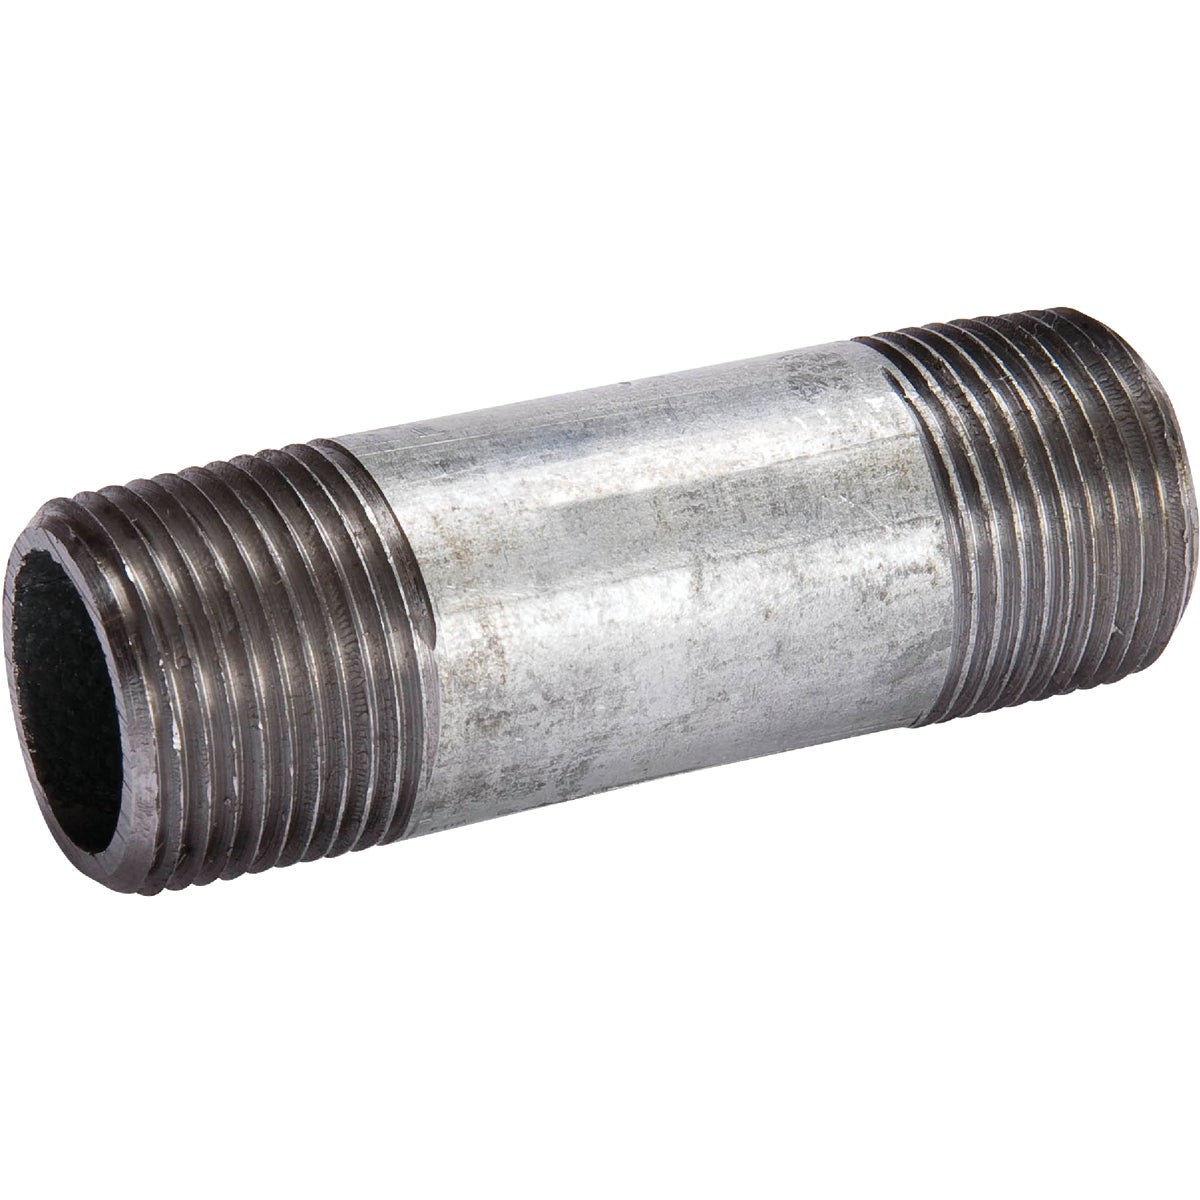 3/8X1-1/2 GALV NIPPLE - 10301 by Southland Pipe Nippl